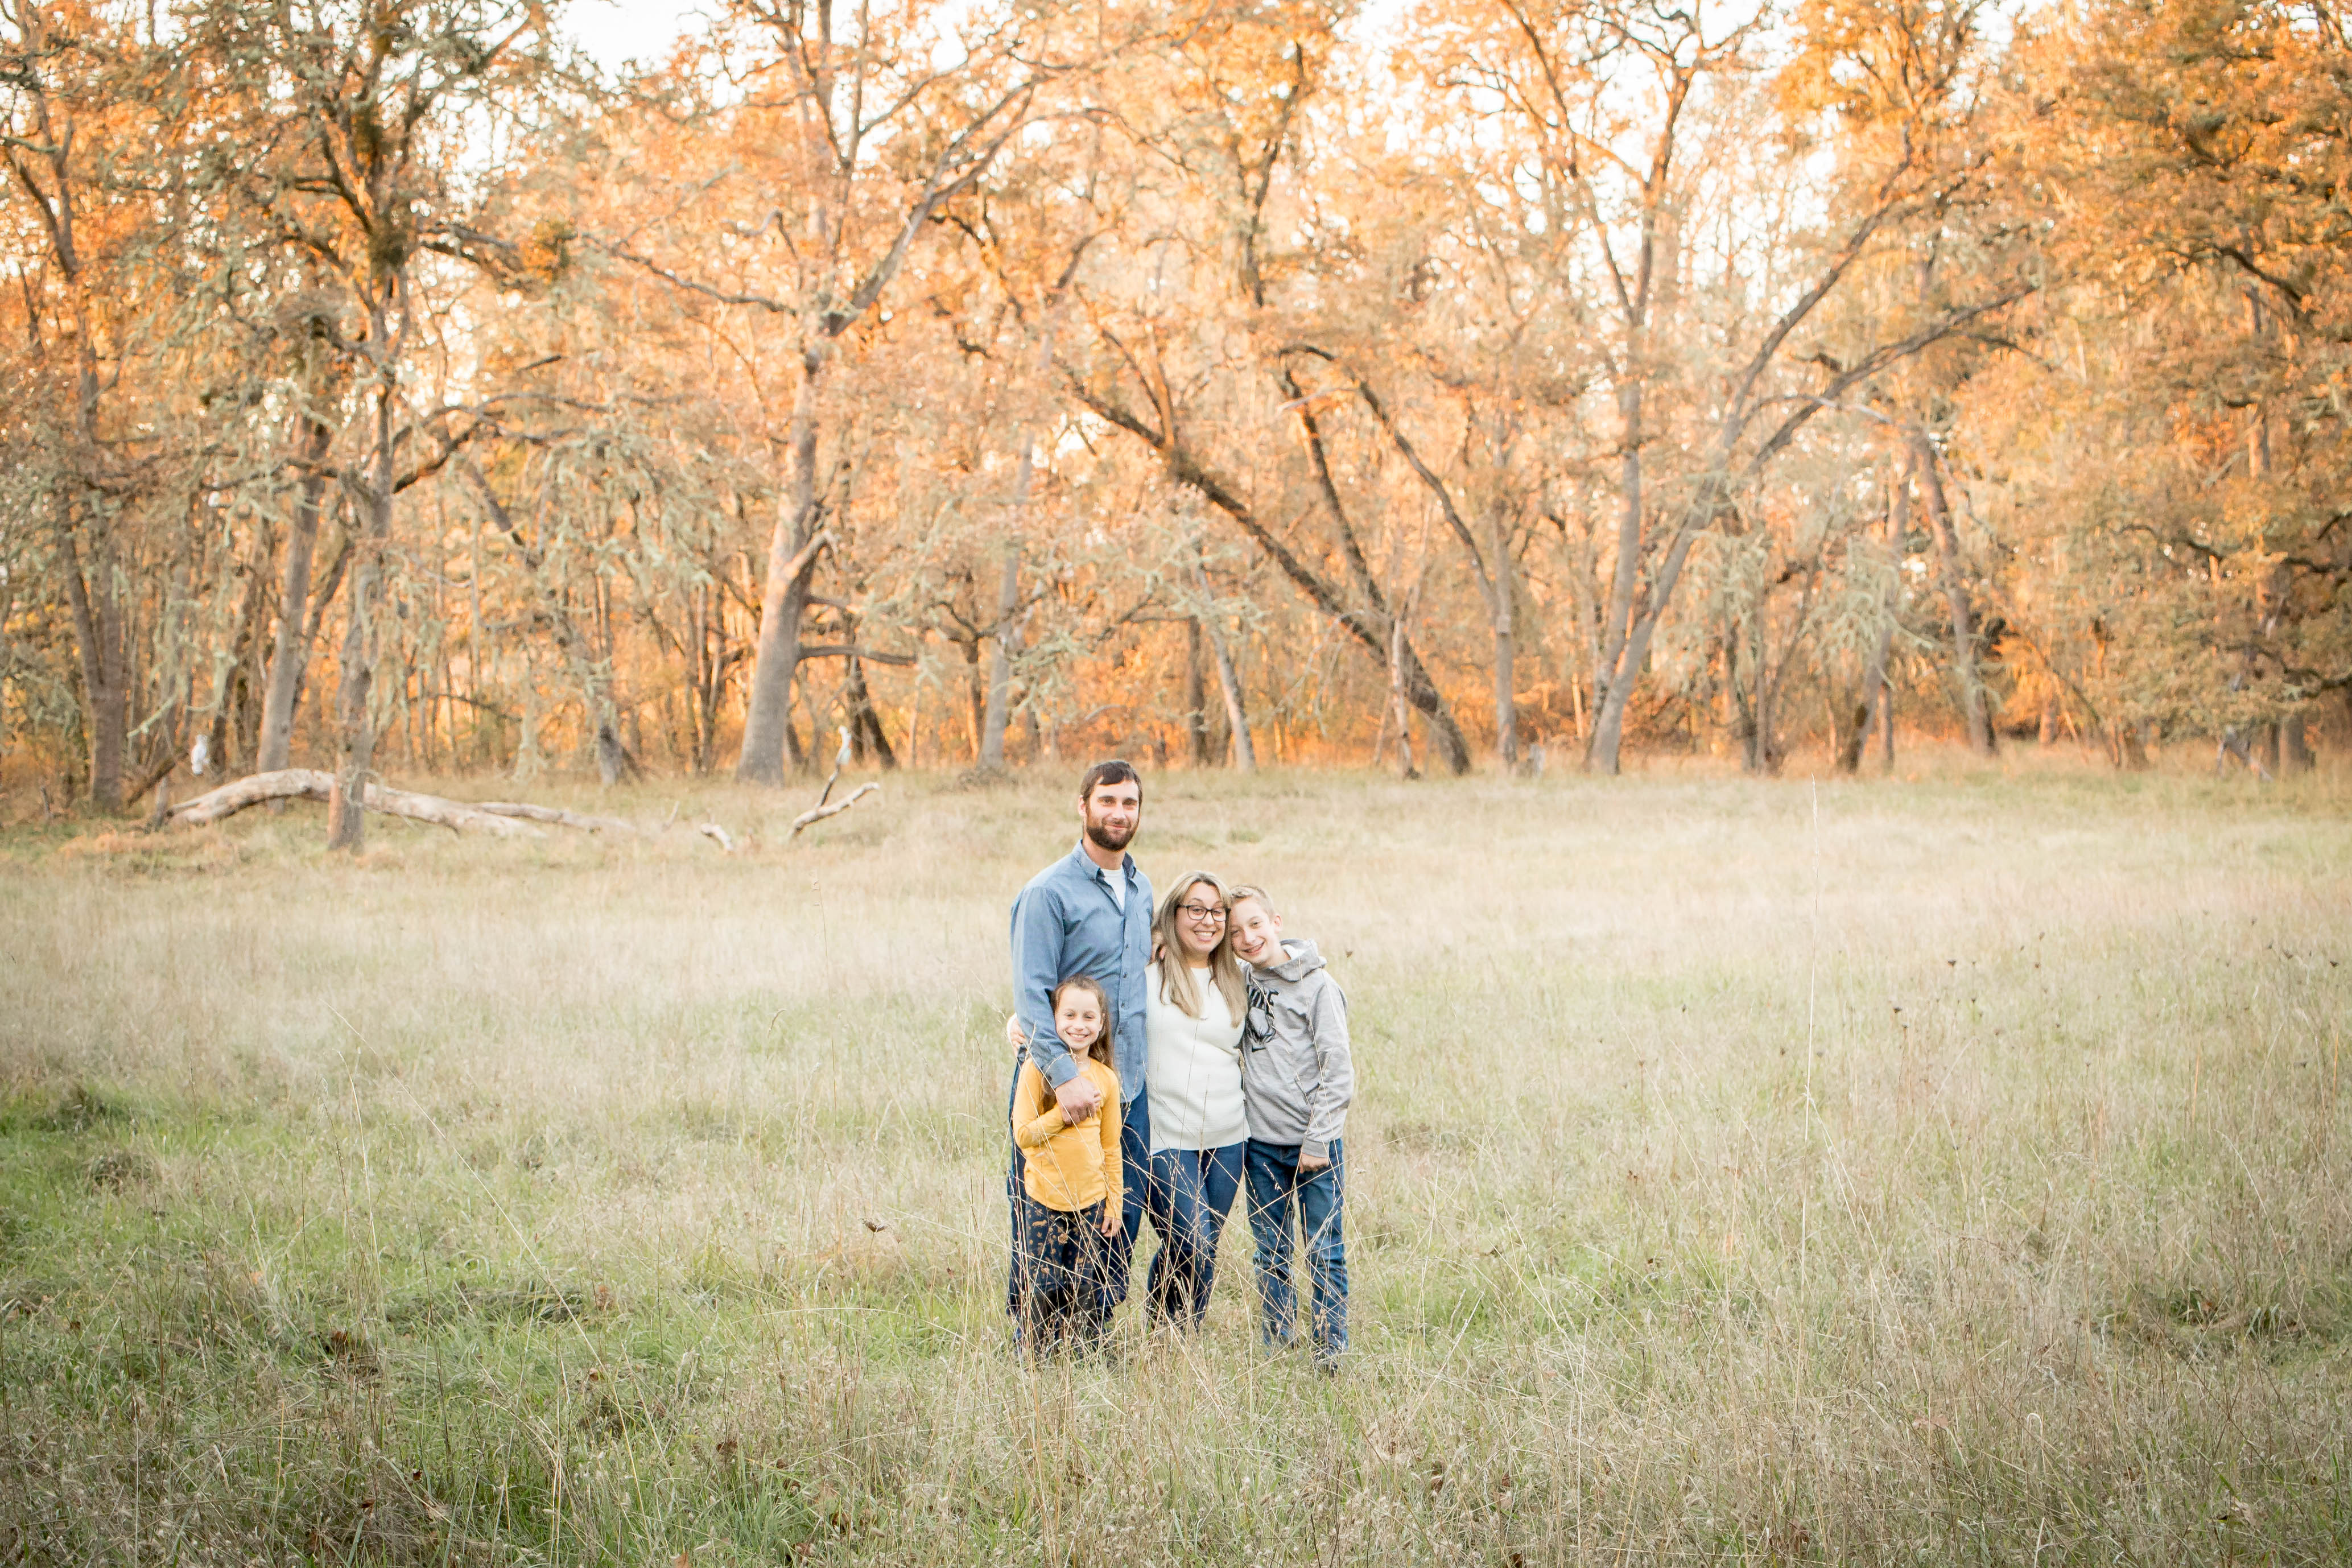 Family Photo Shoot by JeJe Design